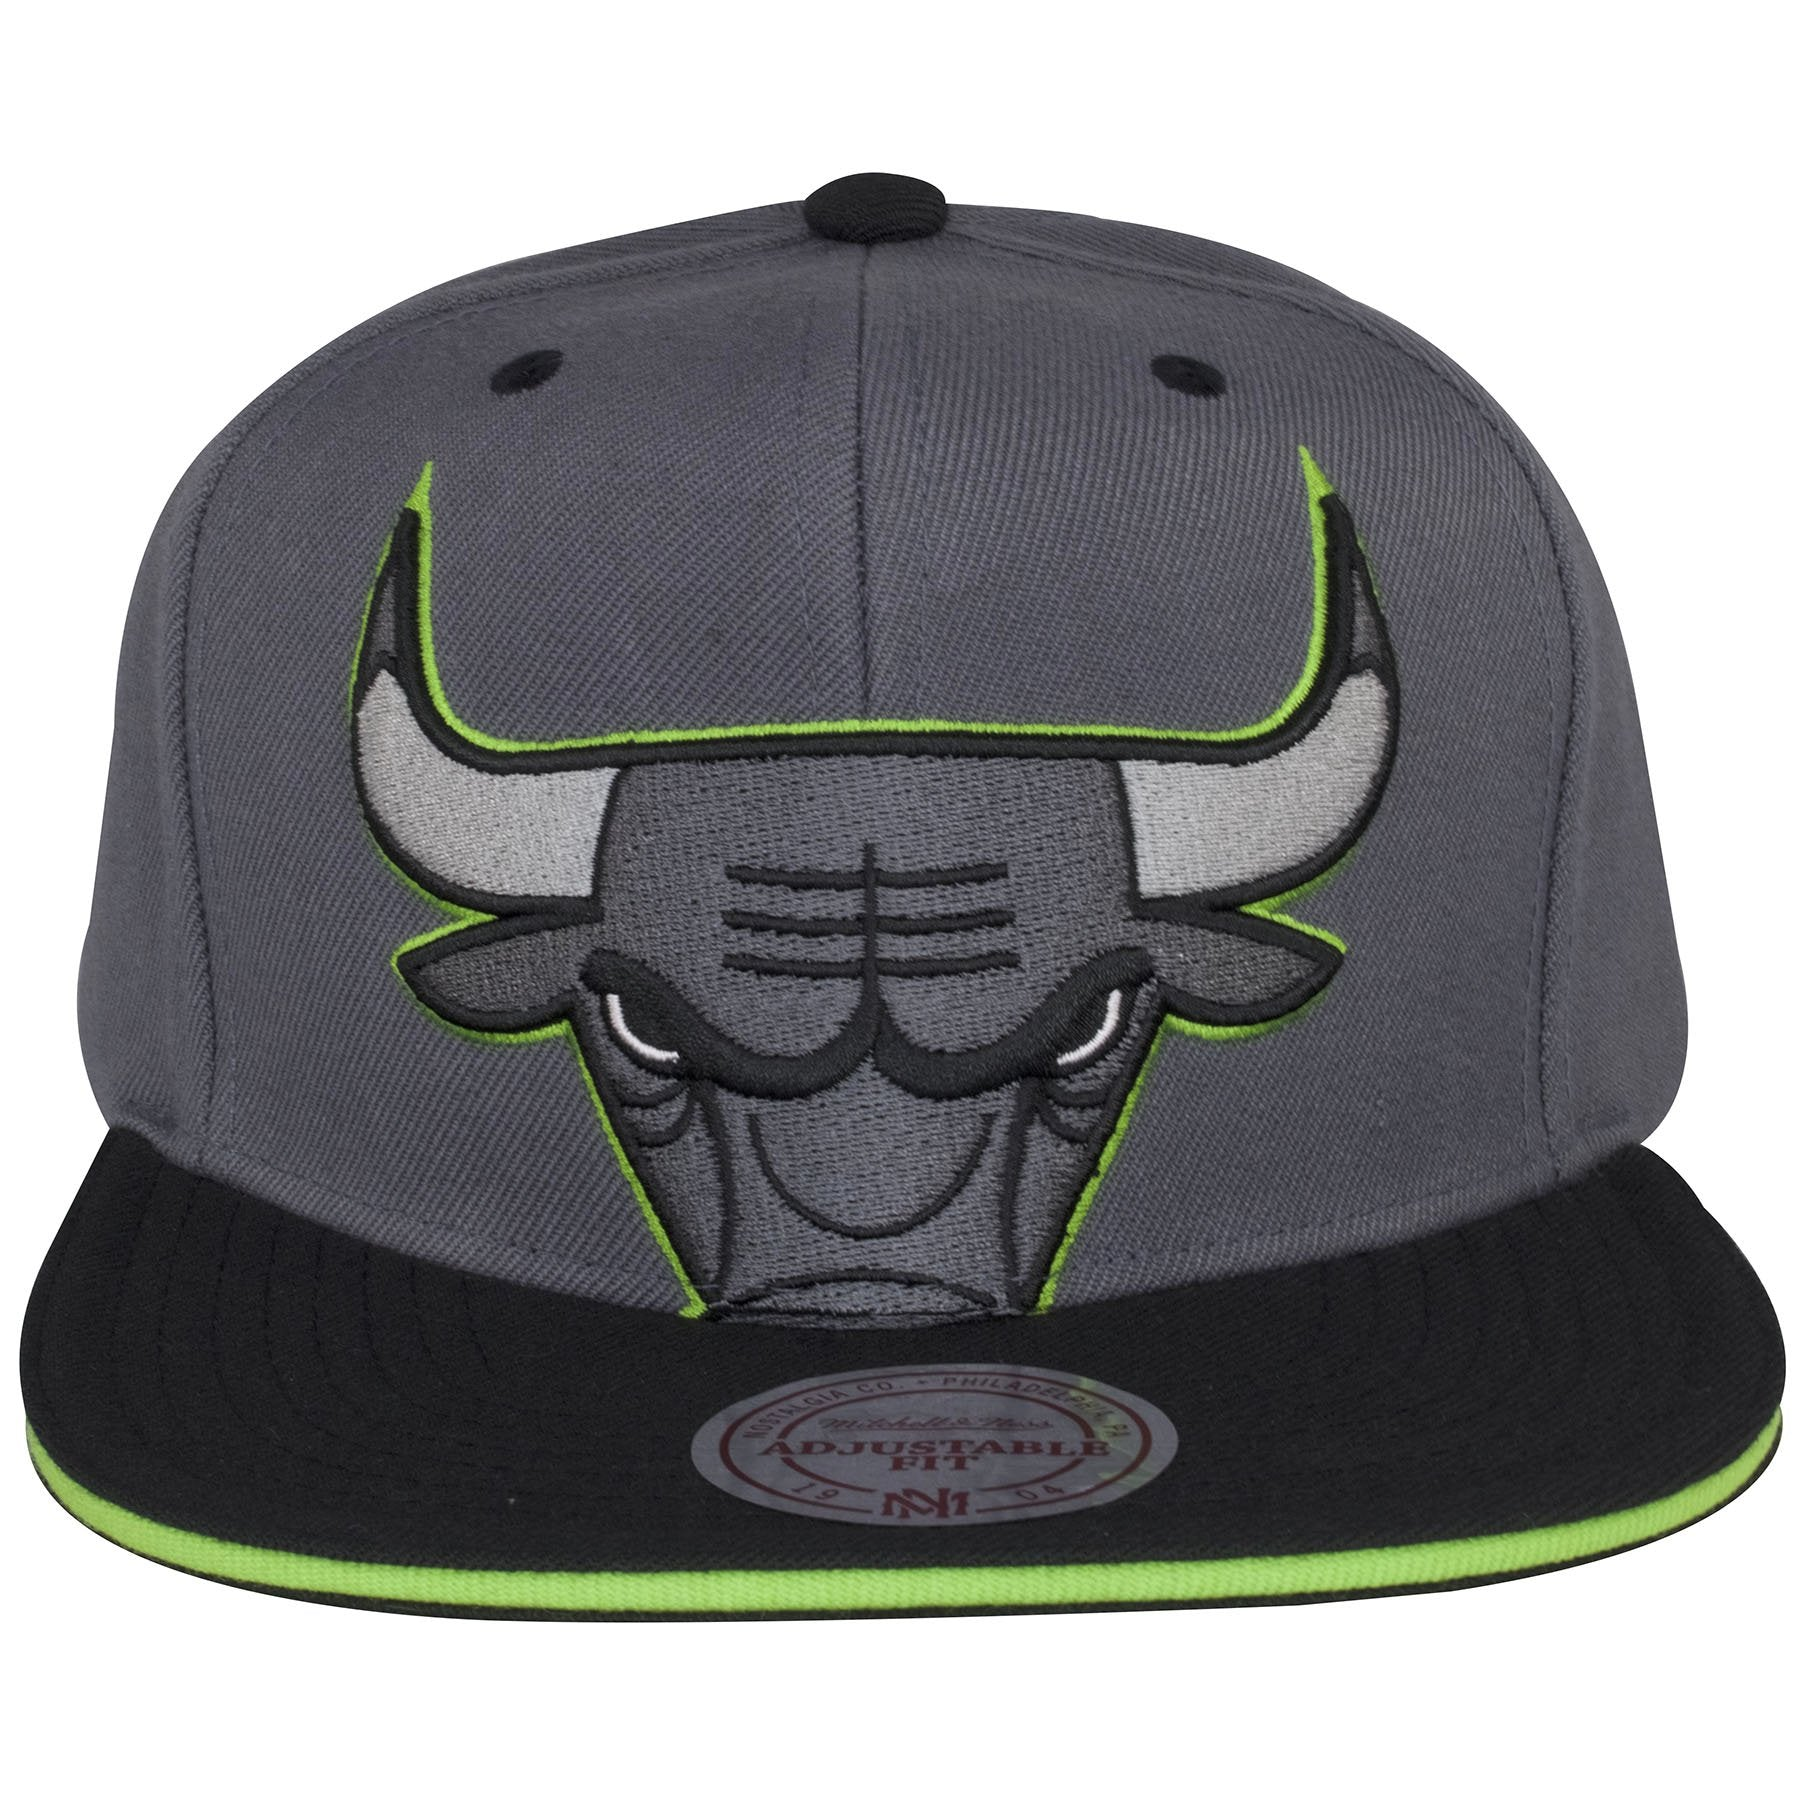 The Chicago Bulls logo on the front of this Air Jordan 13 snapback hat is  outlined 6b7da4775b5